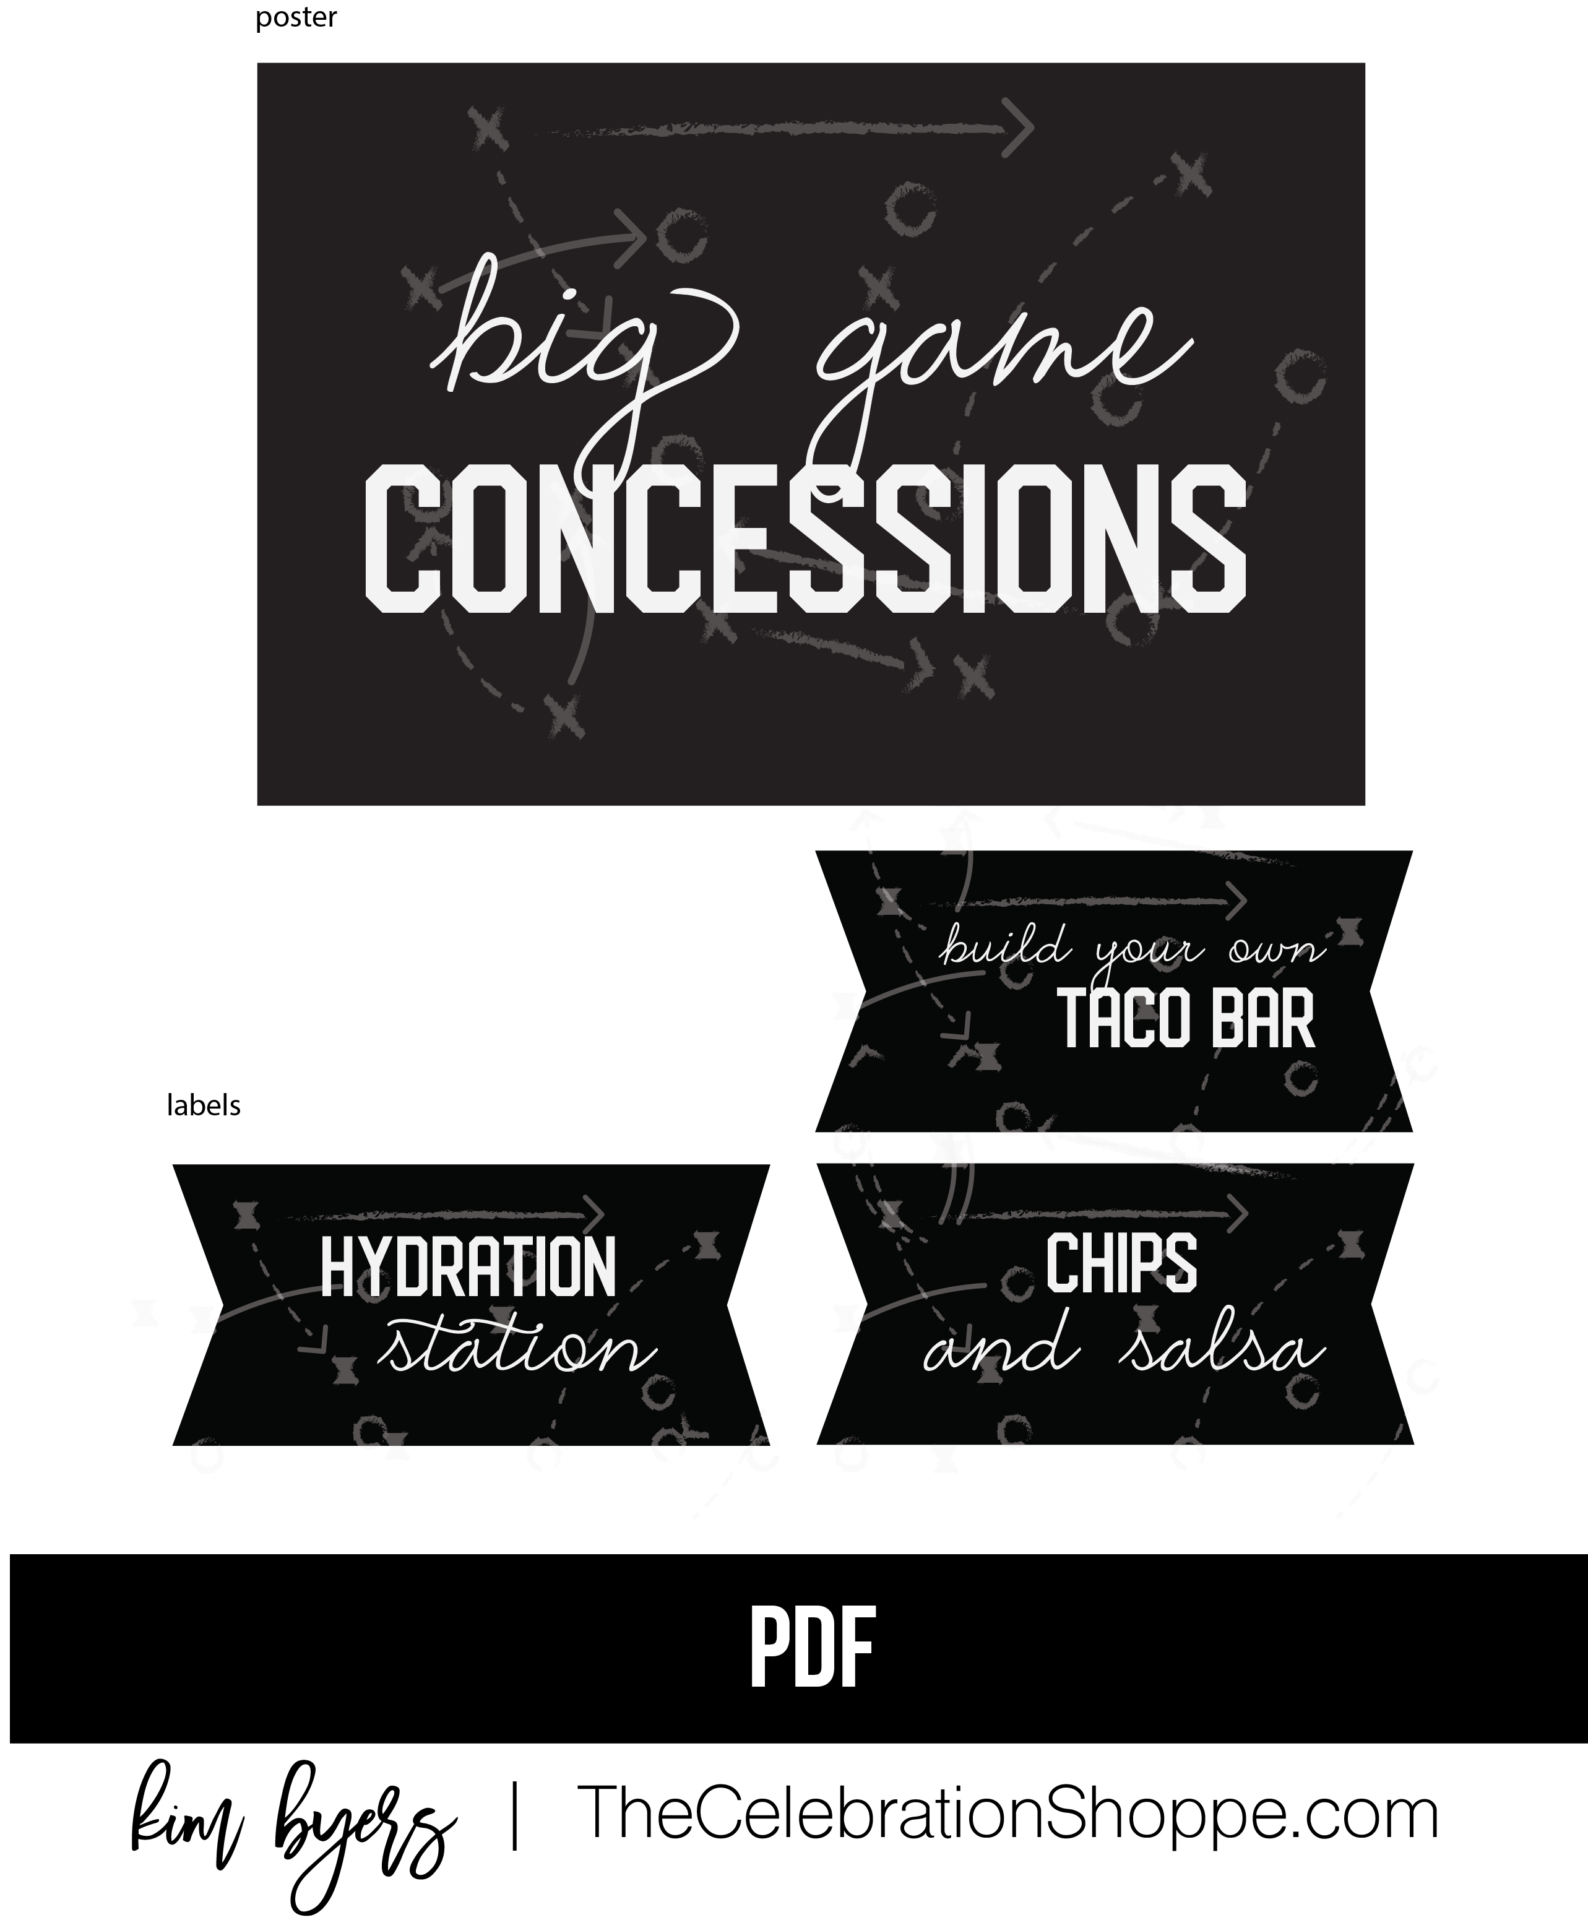 Big Game Concessions Kim Byers